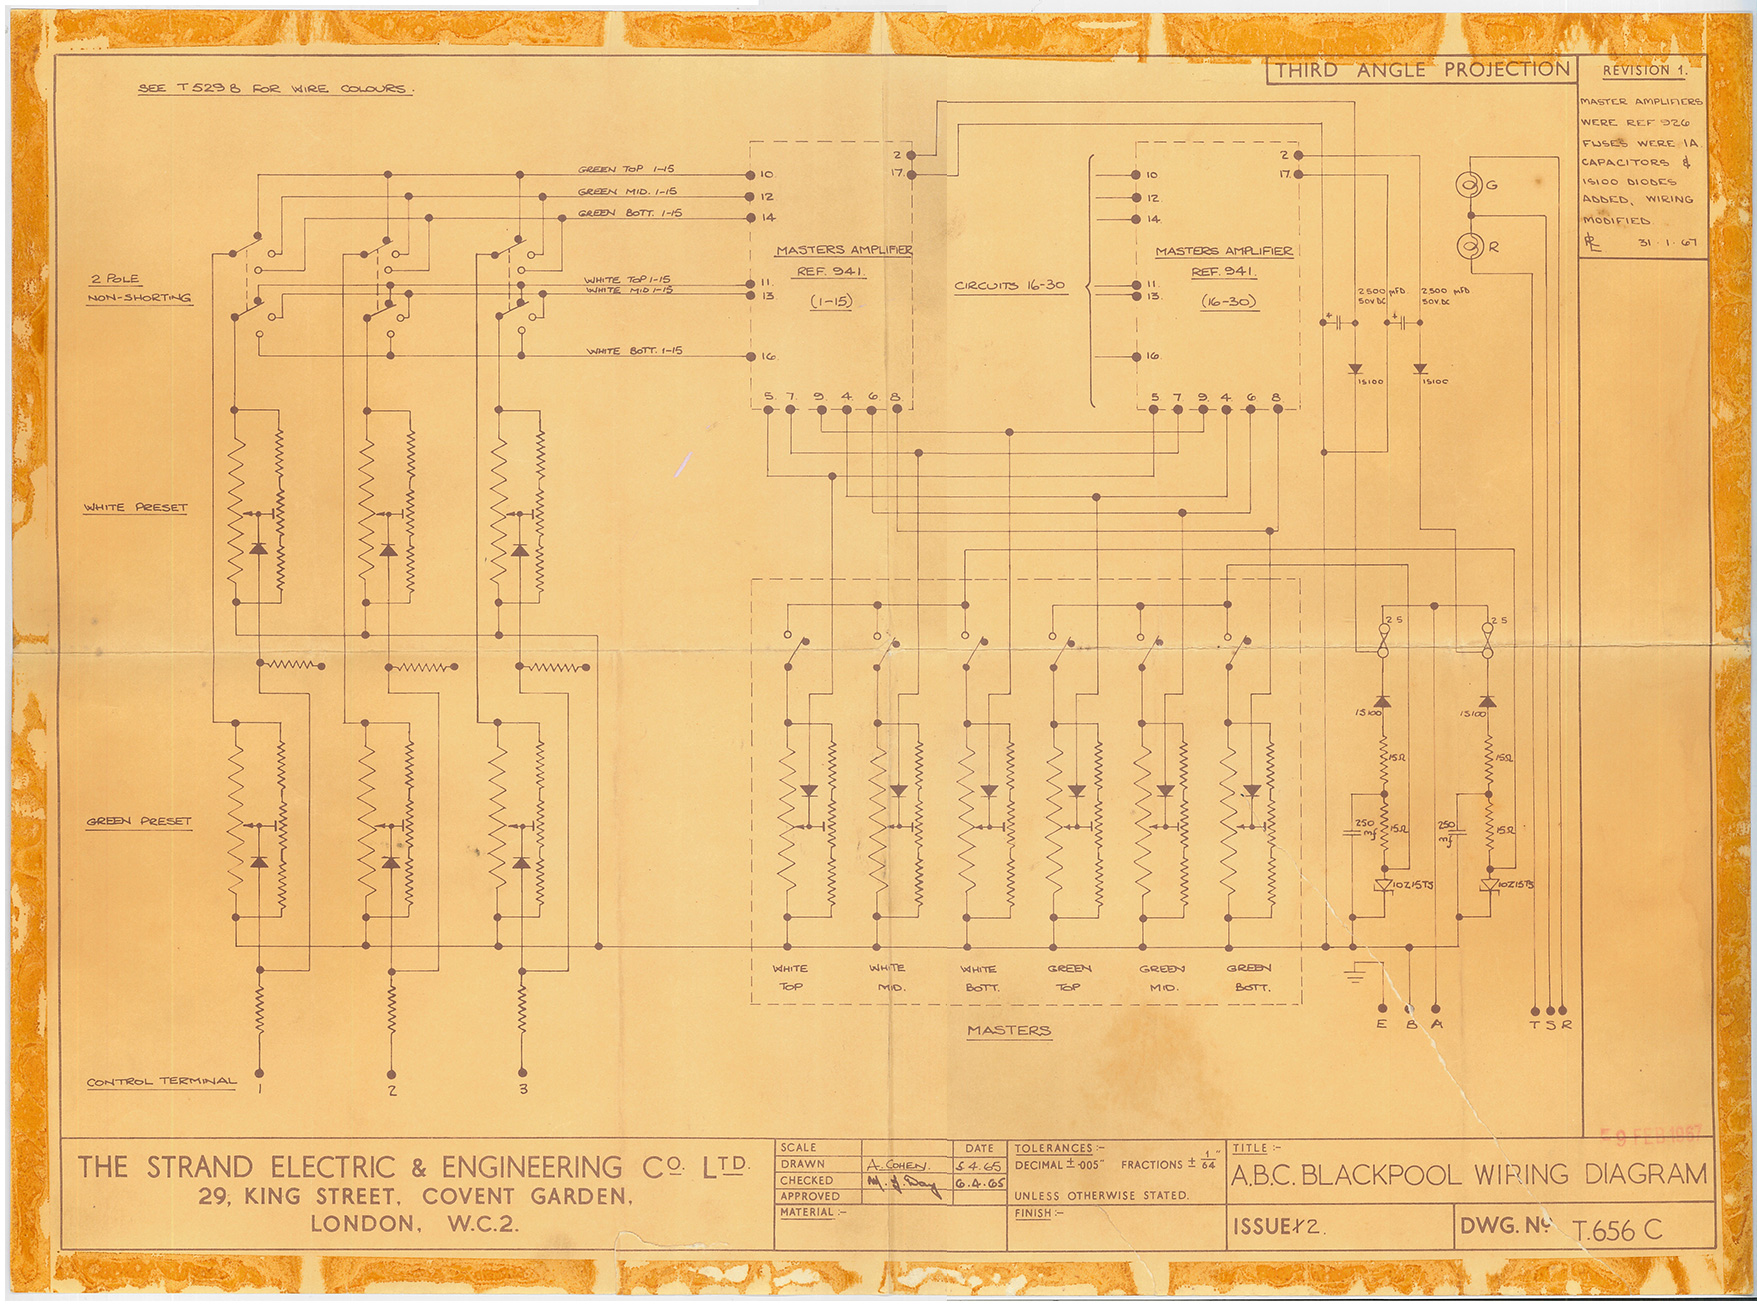 Uk Blackpool Abc Cinema 2 Pole Schematic Wiring Diagram Archive Equipment Related To Over The Years